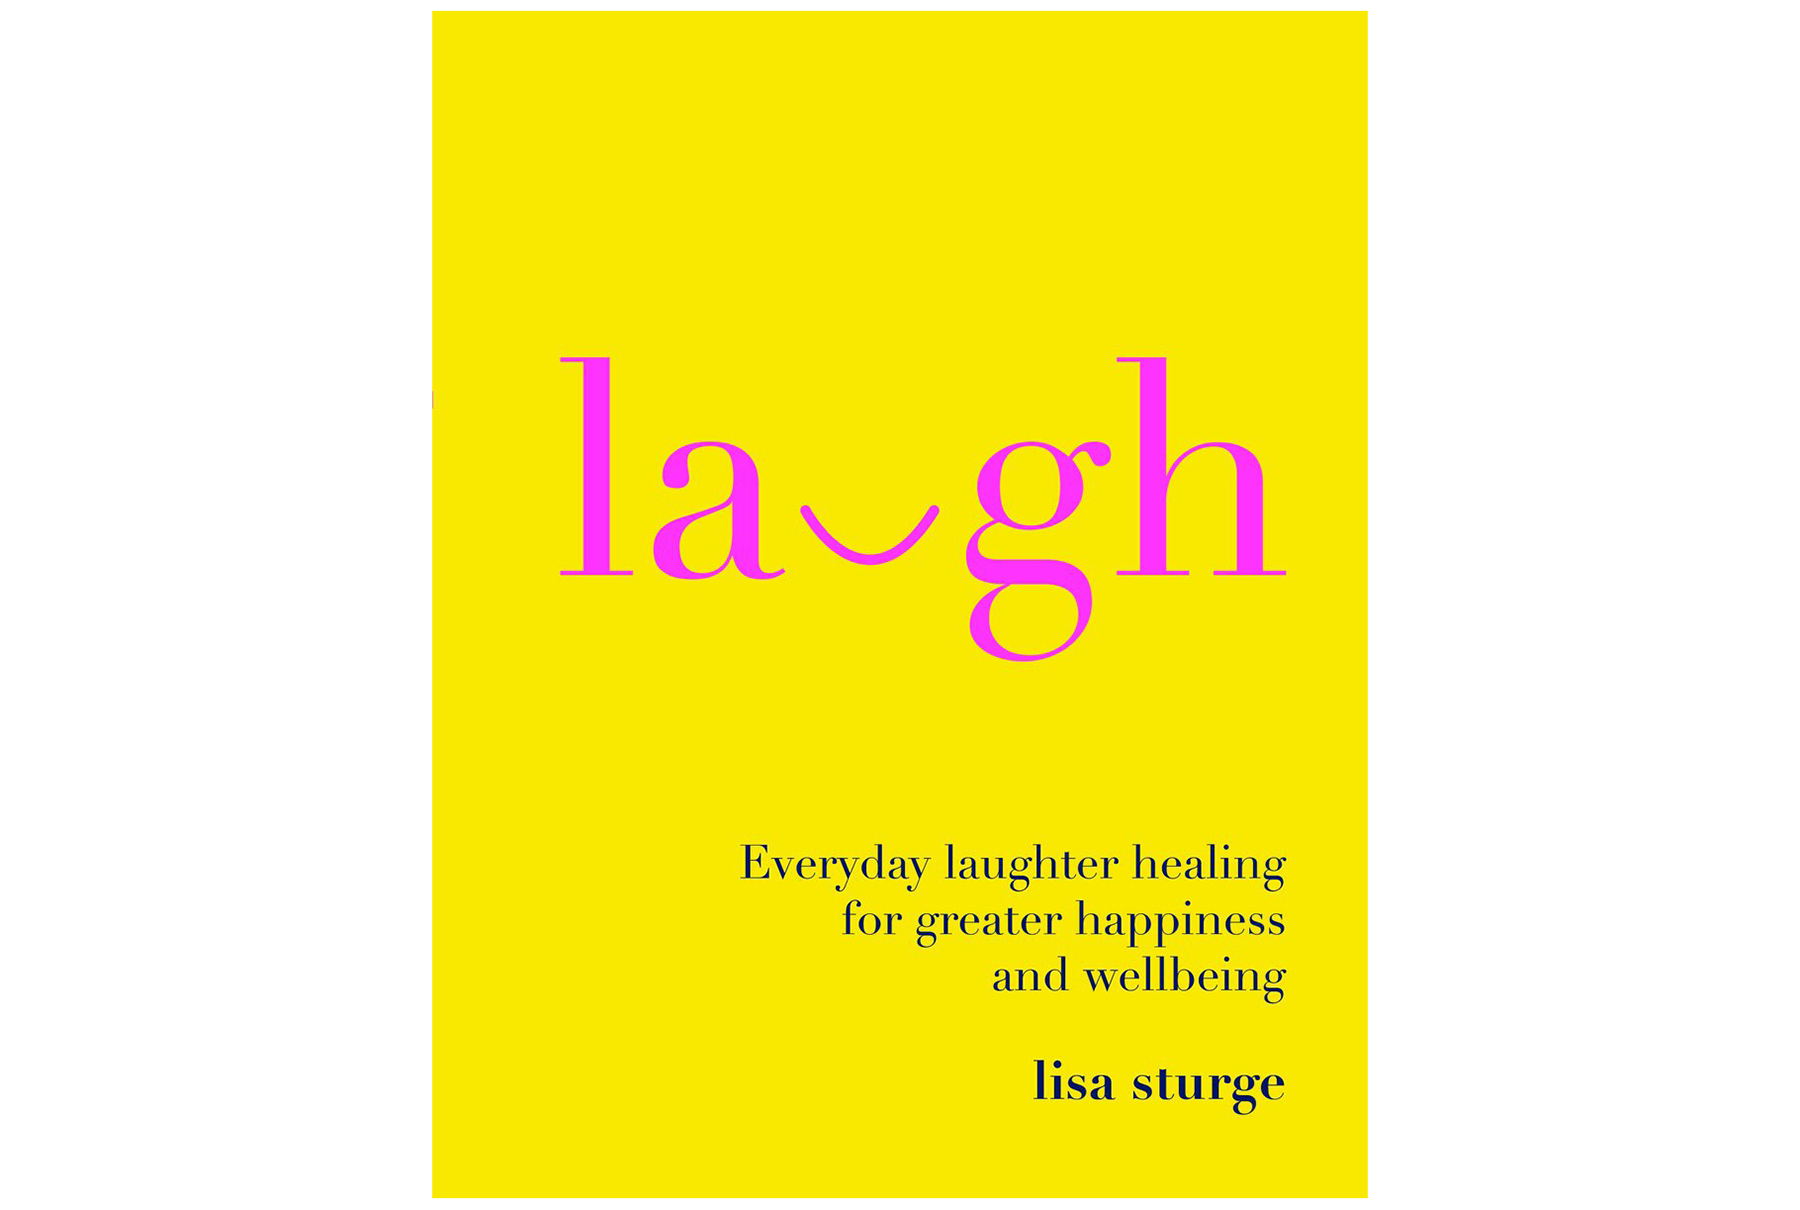 Laugh, by Lisa Sturge